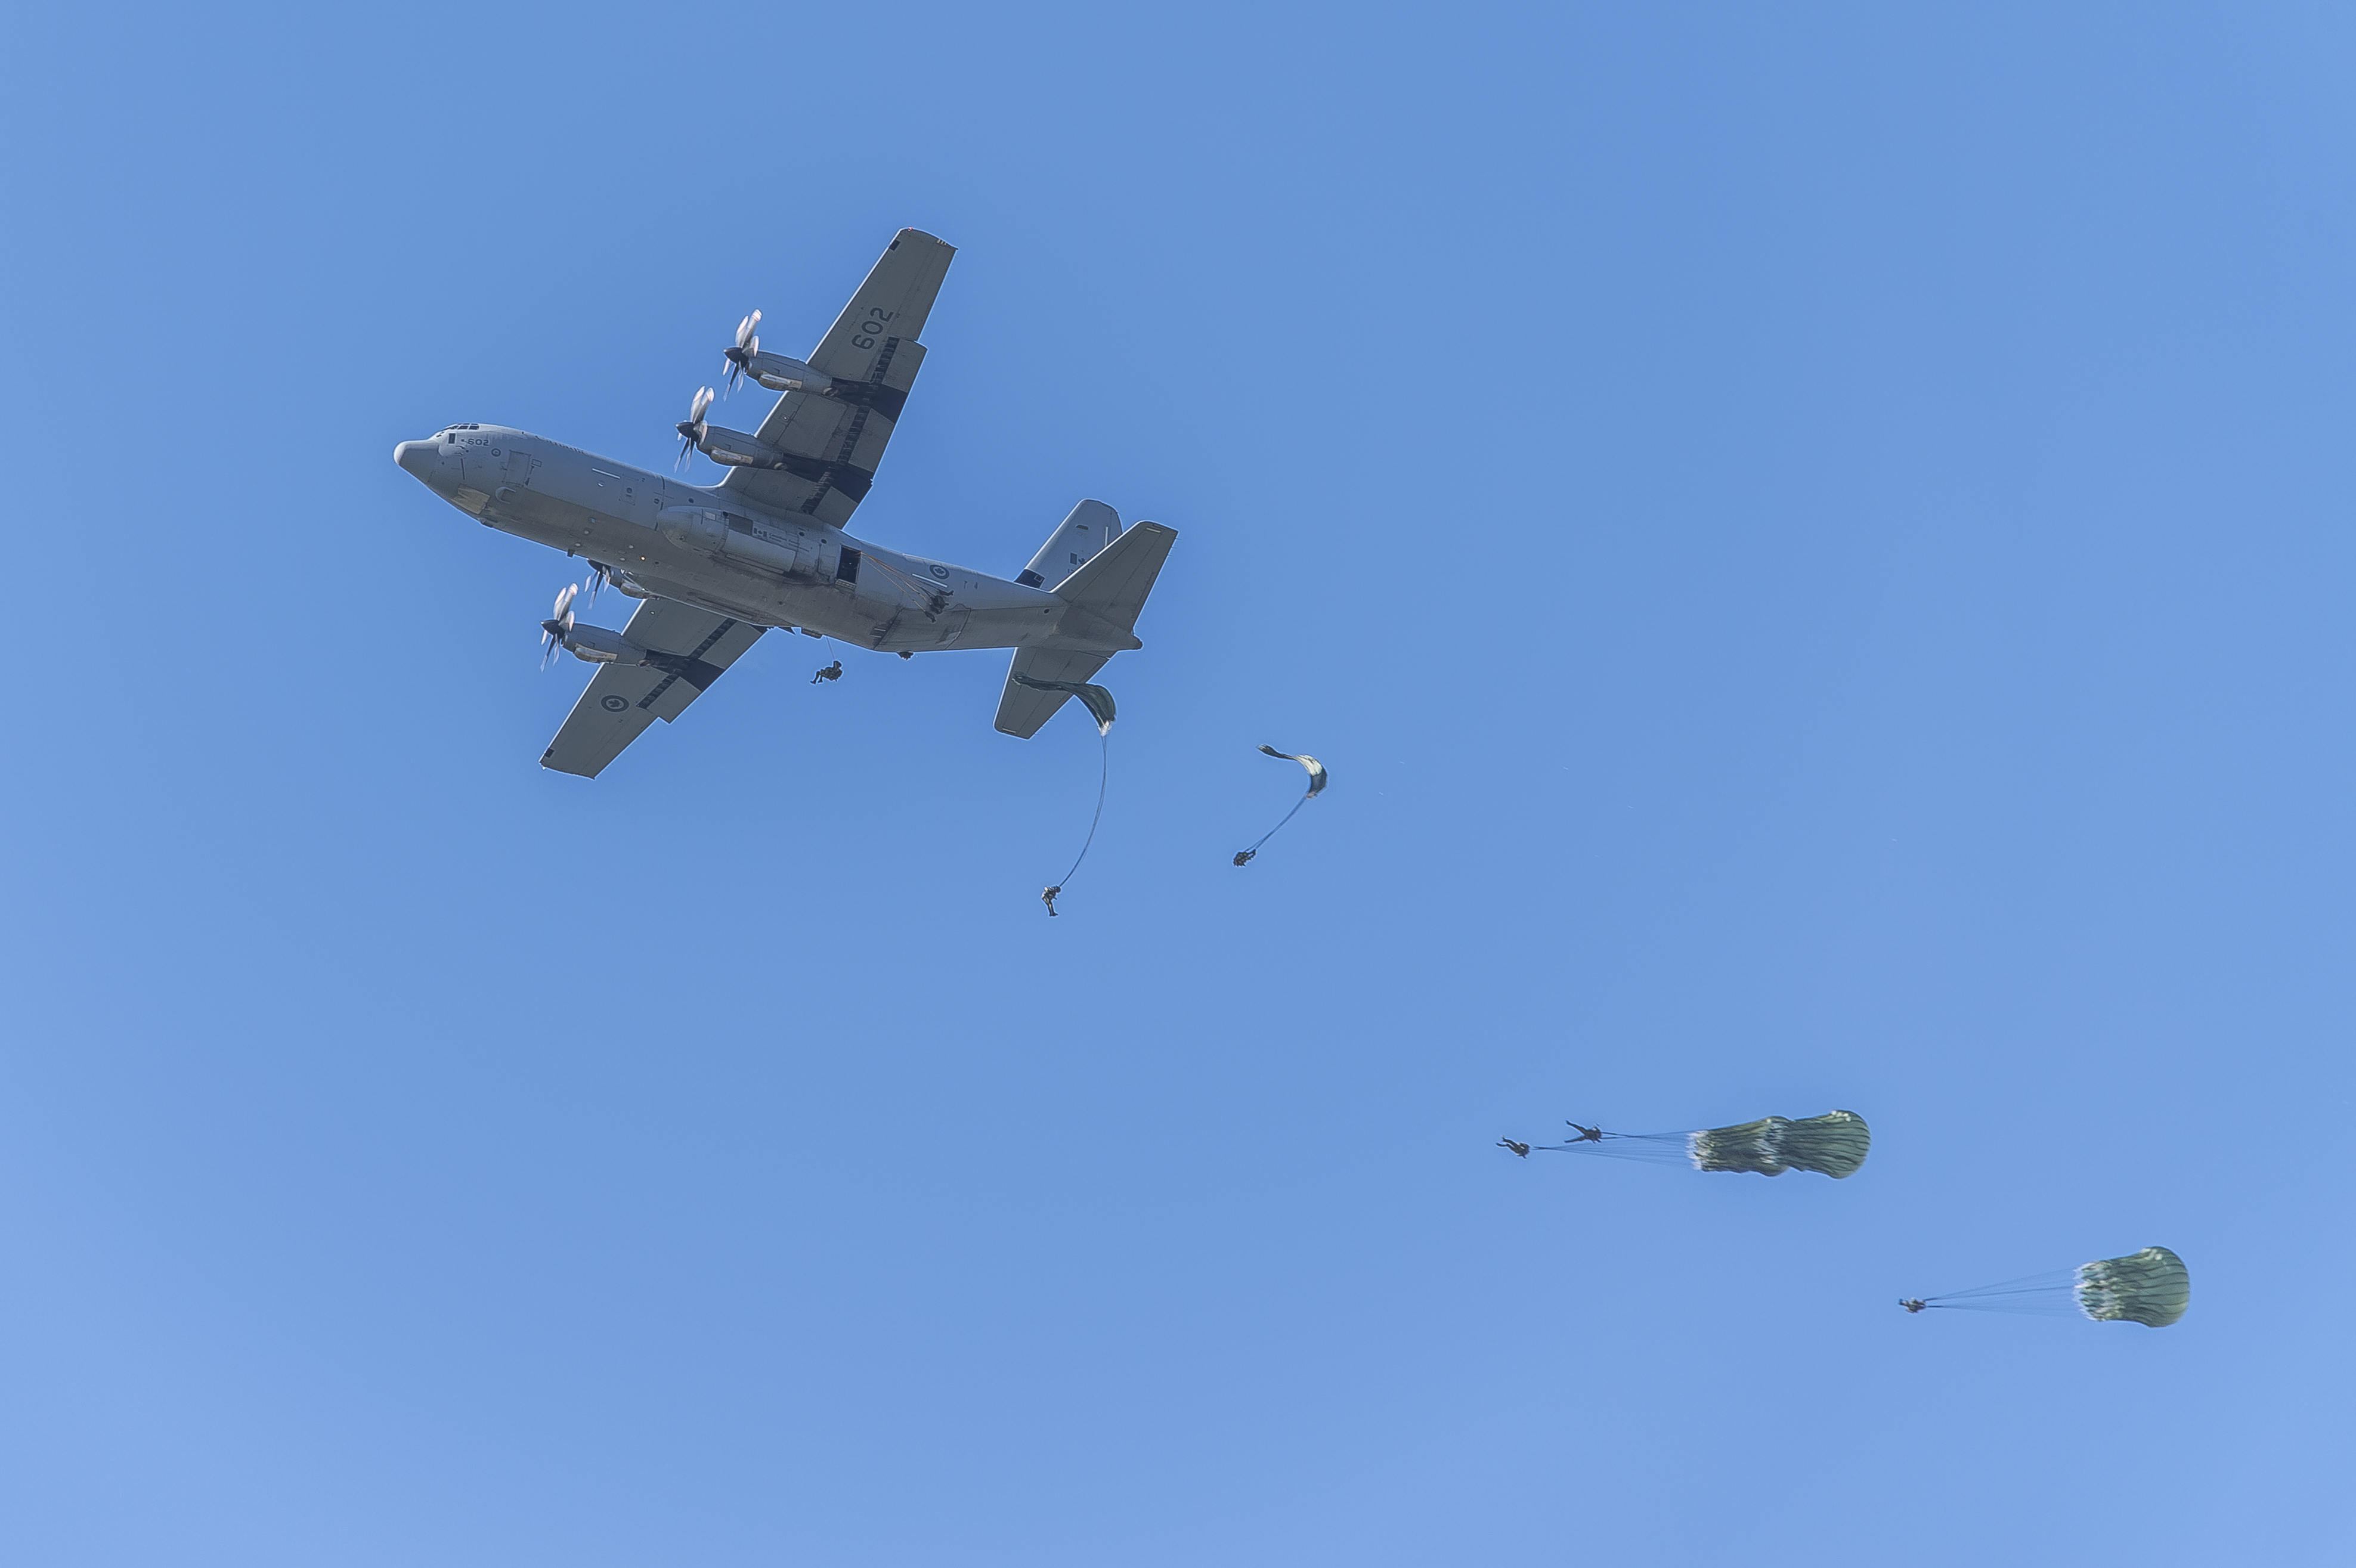 Portuguese paratroopers jump from a Canadian CC-130J Hercules aircraft on a drop zone near Tancos Airfield, Portugal.